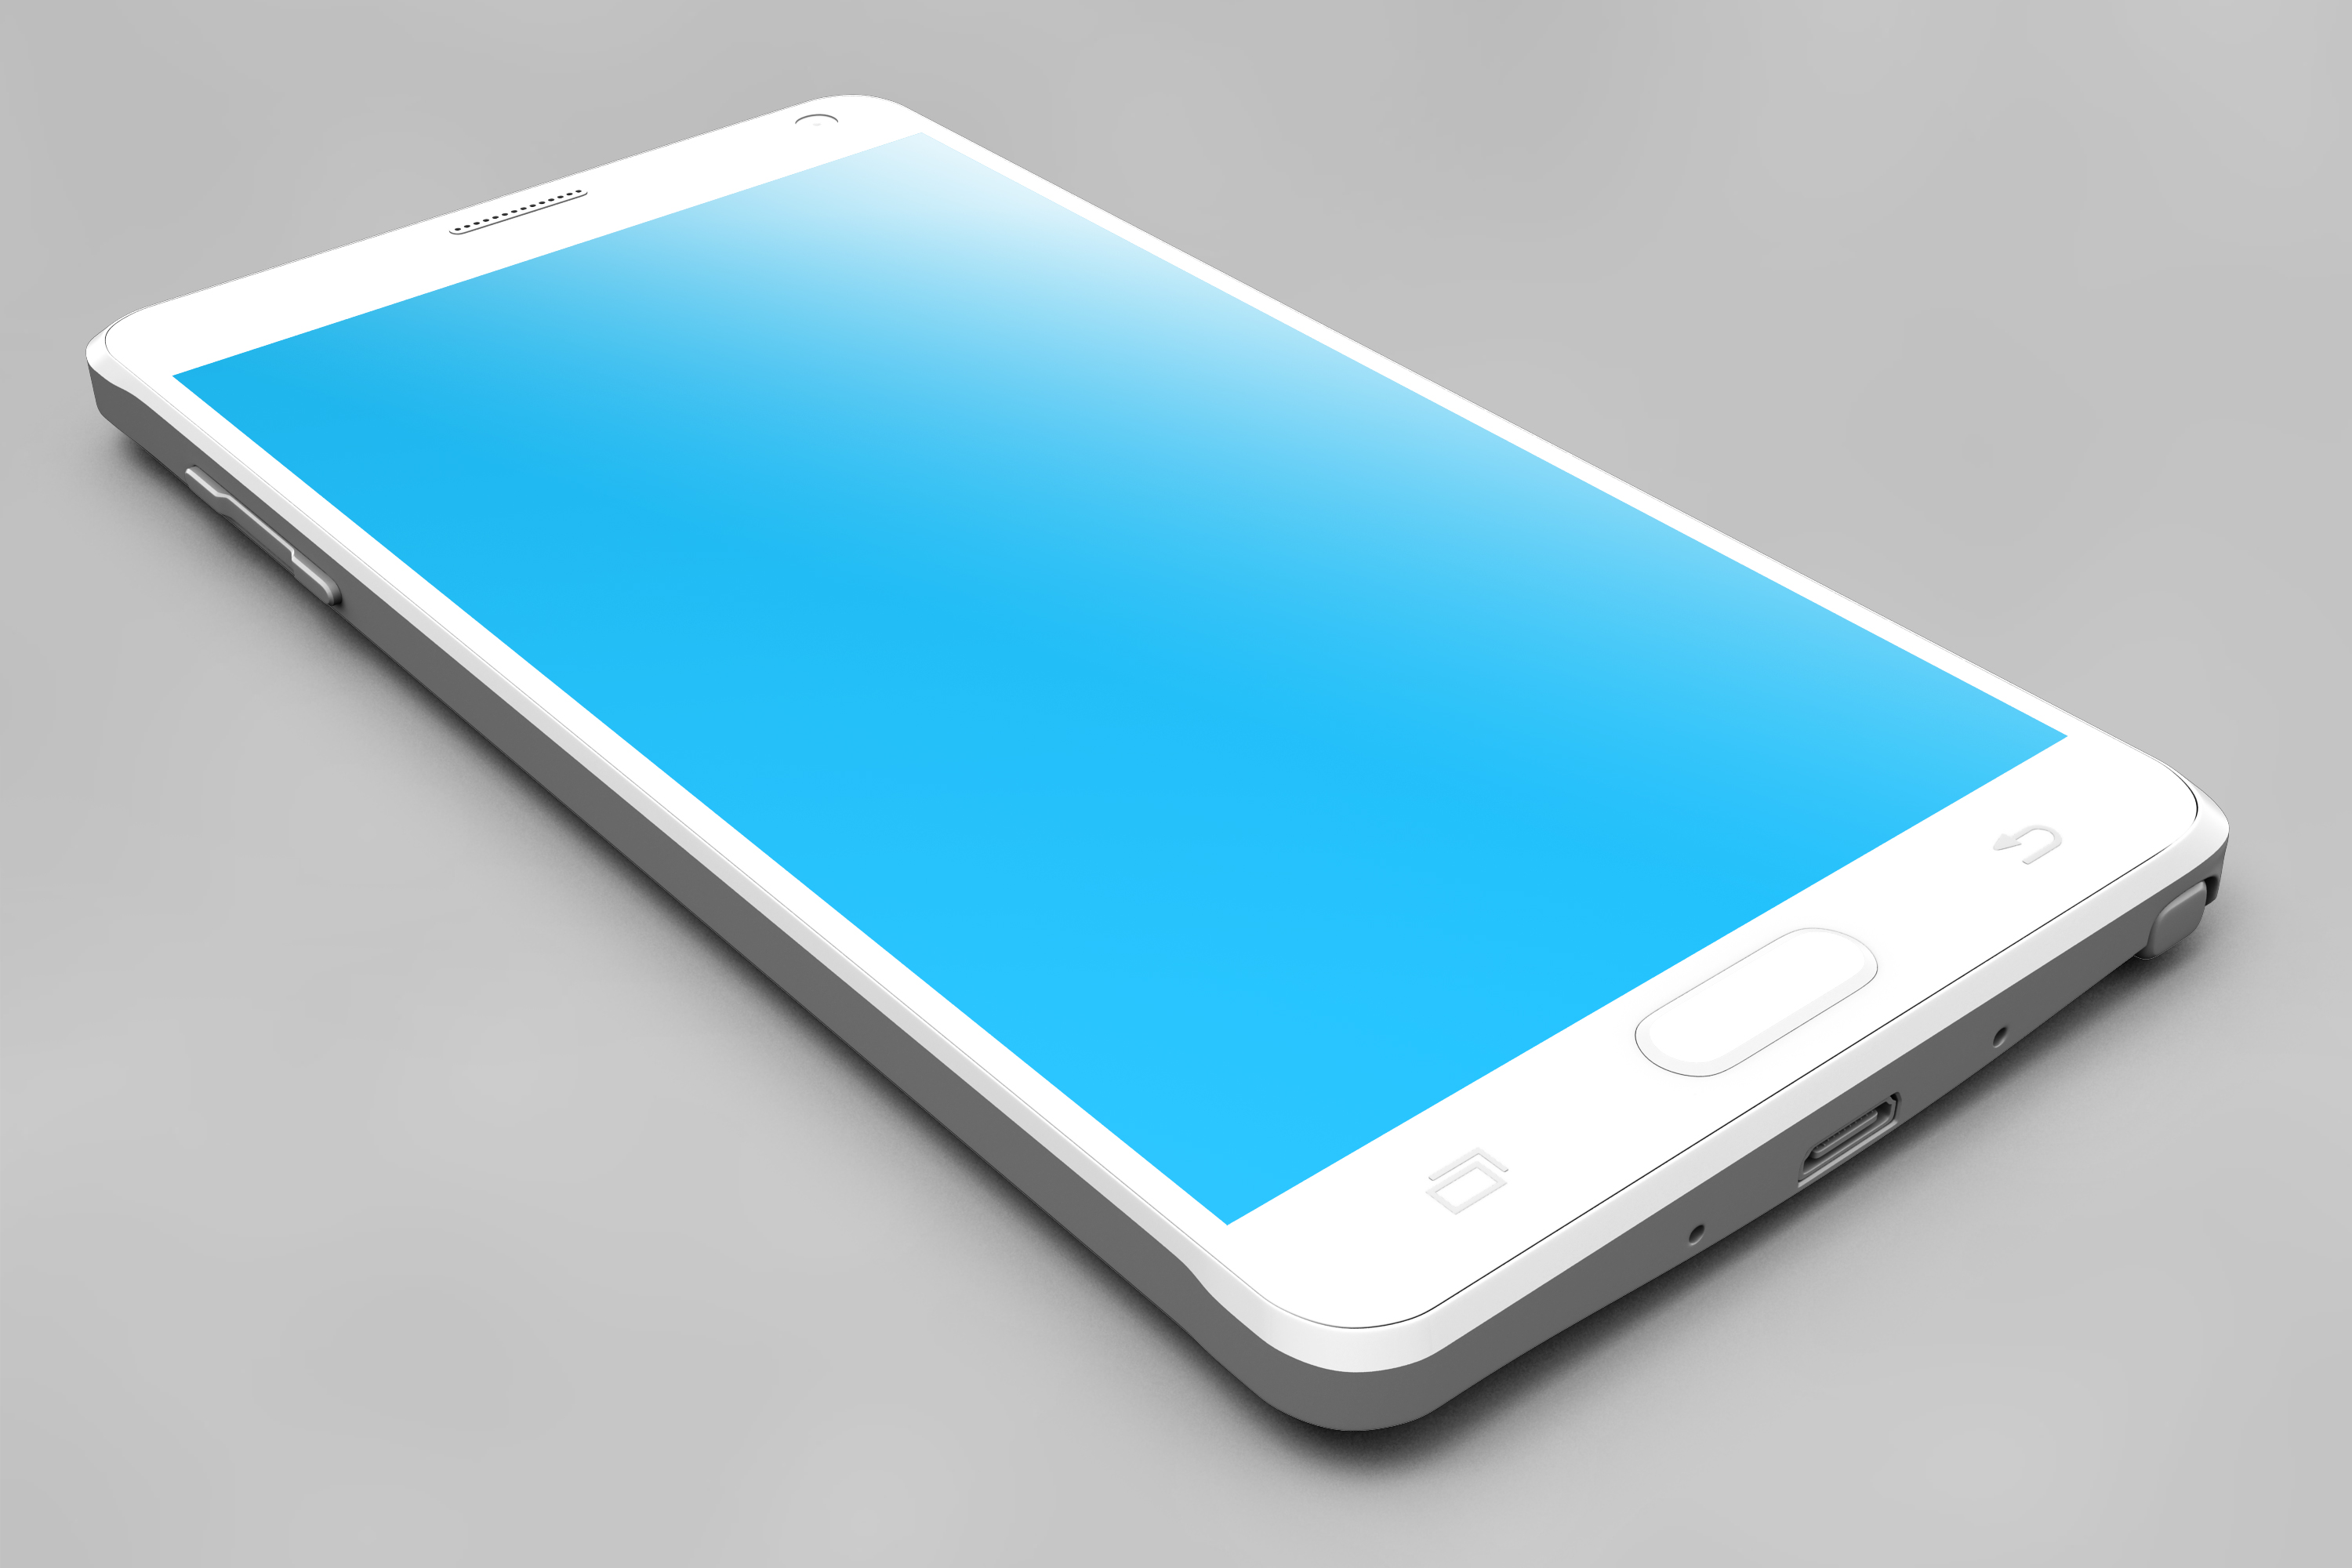 Samsung Galaxy Note 4 Mock-up example image 22